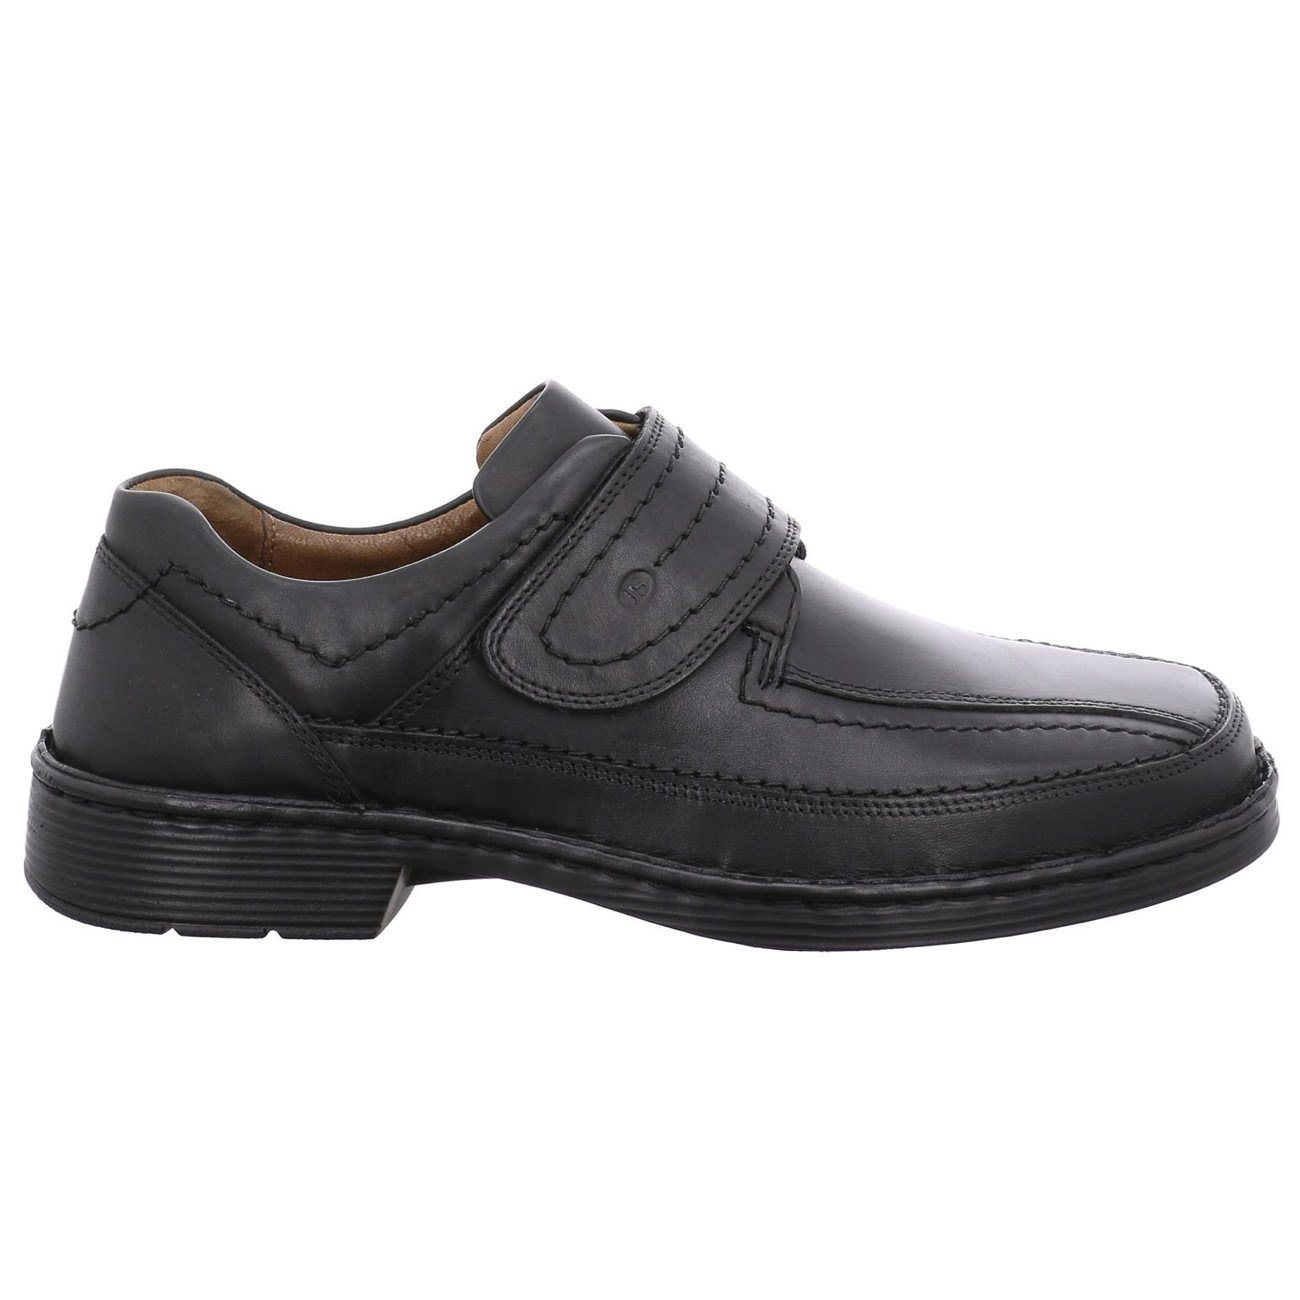 Josef Seibel, Bradford 06, Mens, Shoe, Leather, Black Shoes Josef Seibel Schwarz 45